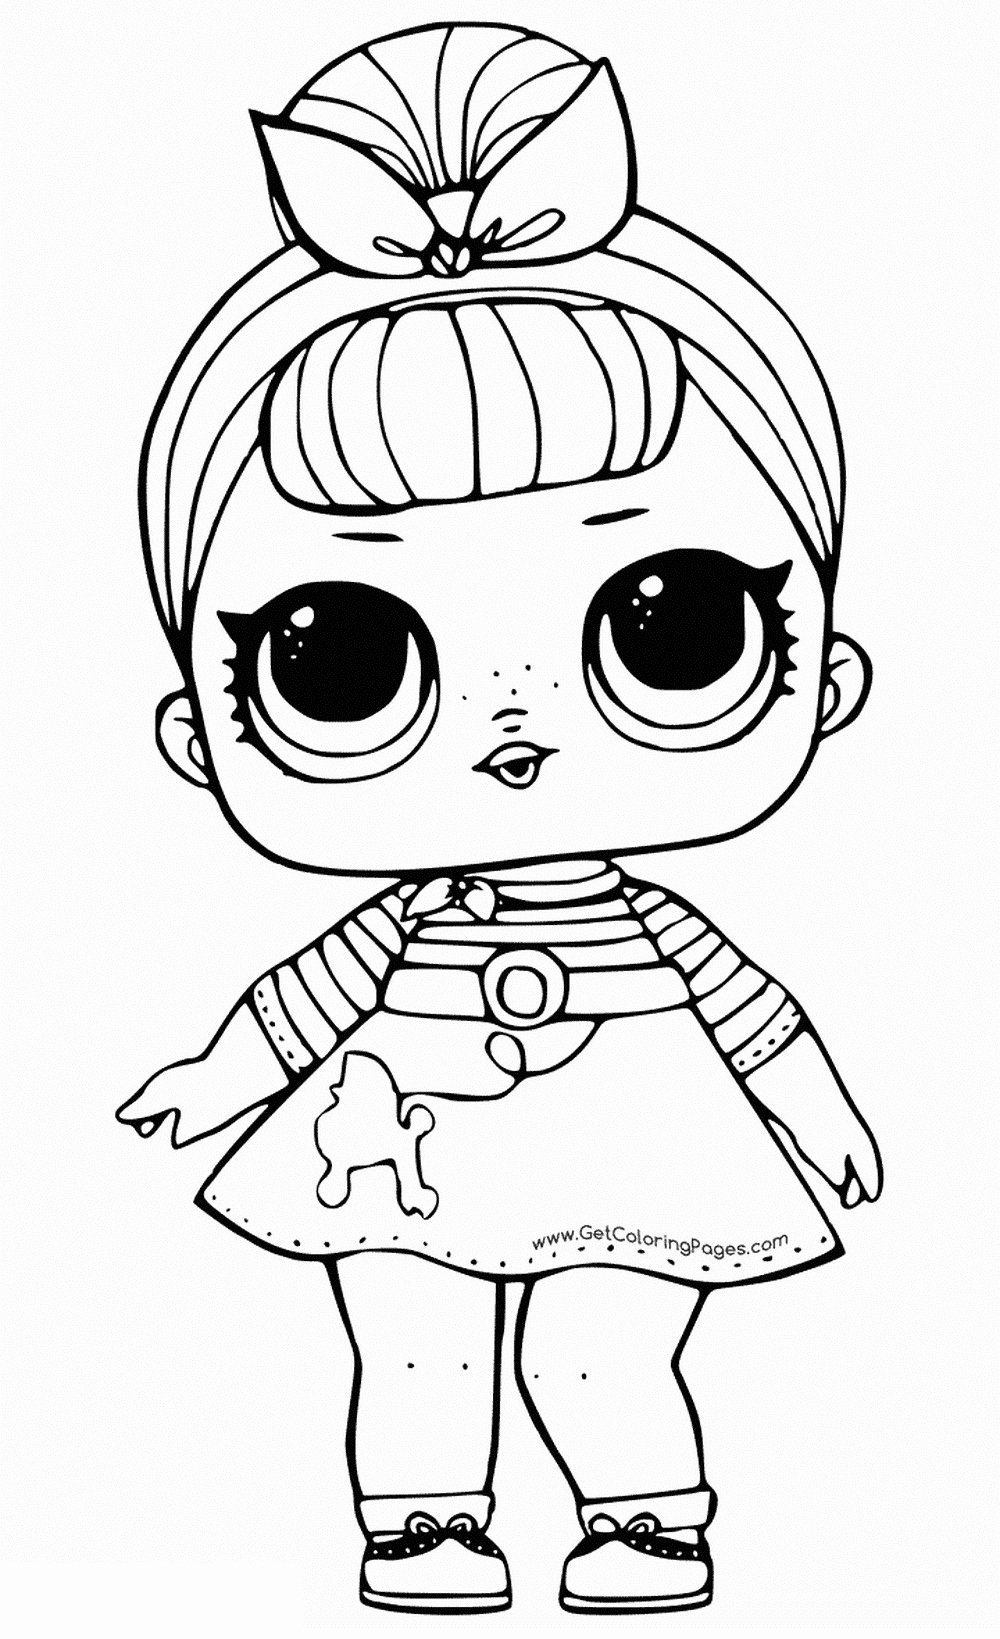 Coloring Picture Of A Girl Lovely Coloring Pages Of Lol Surprise Dolls 80 Pieces Of Black And Coloring Pages Cartoon Coloring Pages Unicorn Coloring Pages